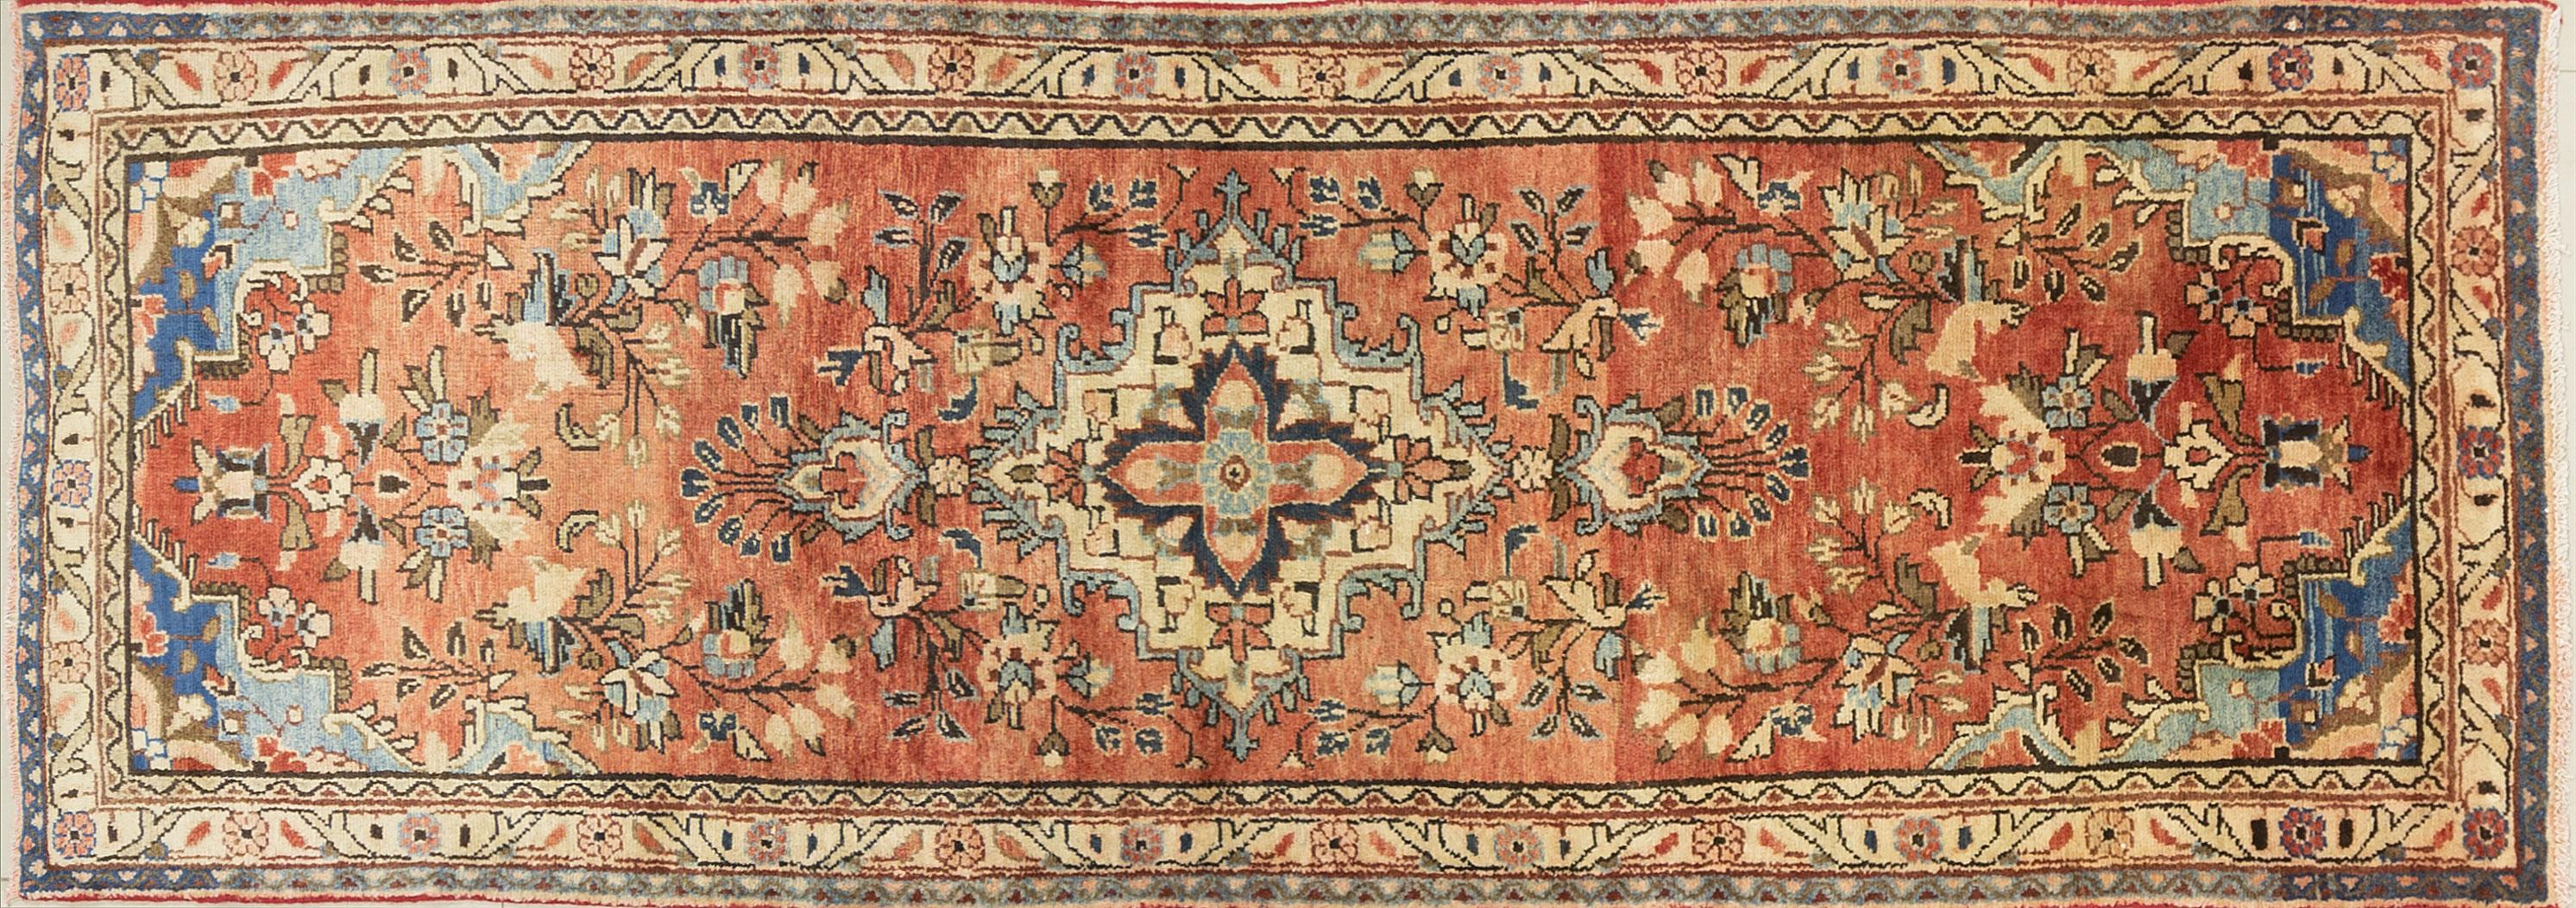 A Persian Hand Knotted Hamadan Runner, 280 x 93